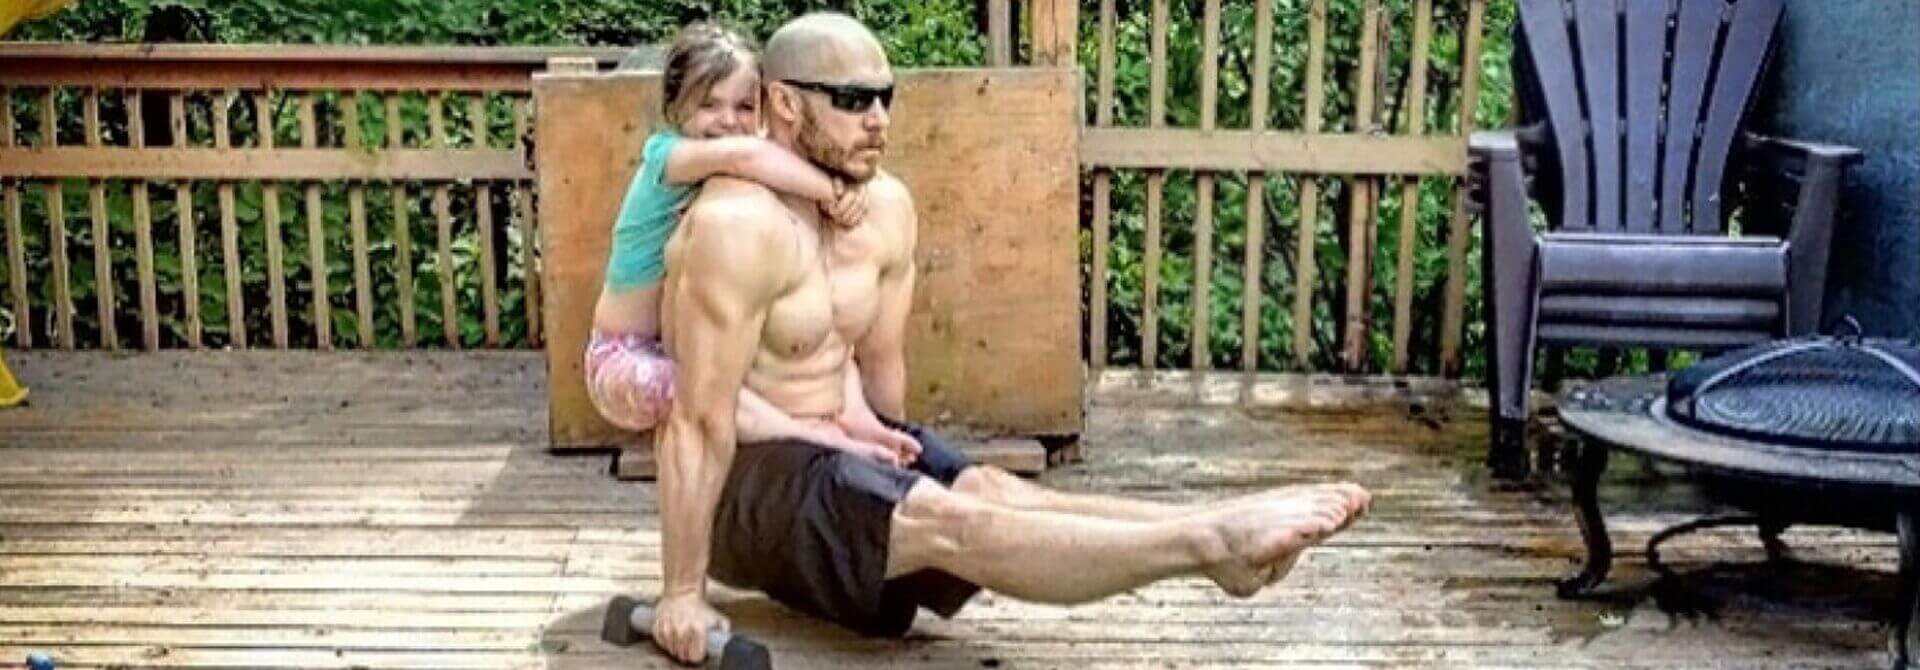 GymnasticBodies athlete demonstrates core control, with the added weight of his heroic fatherhood.